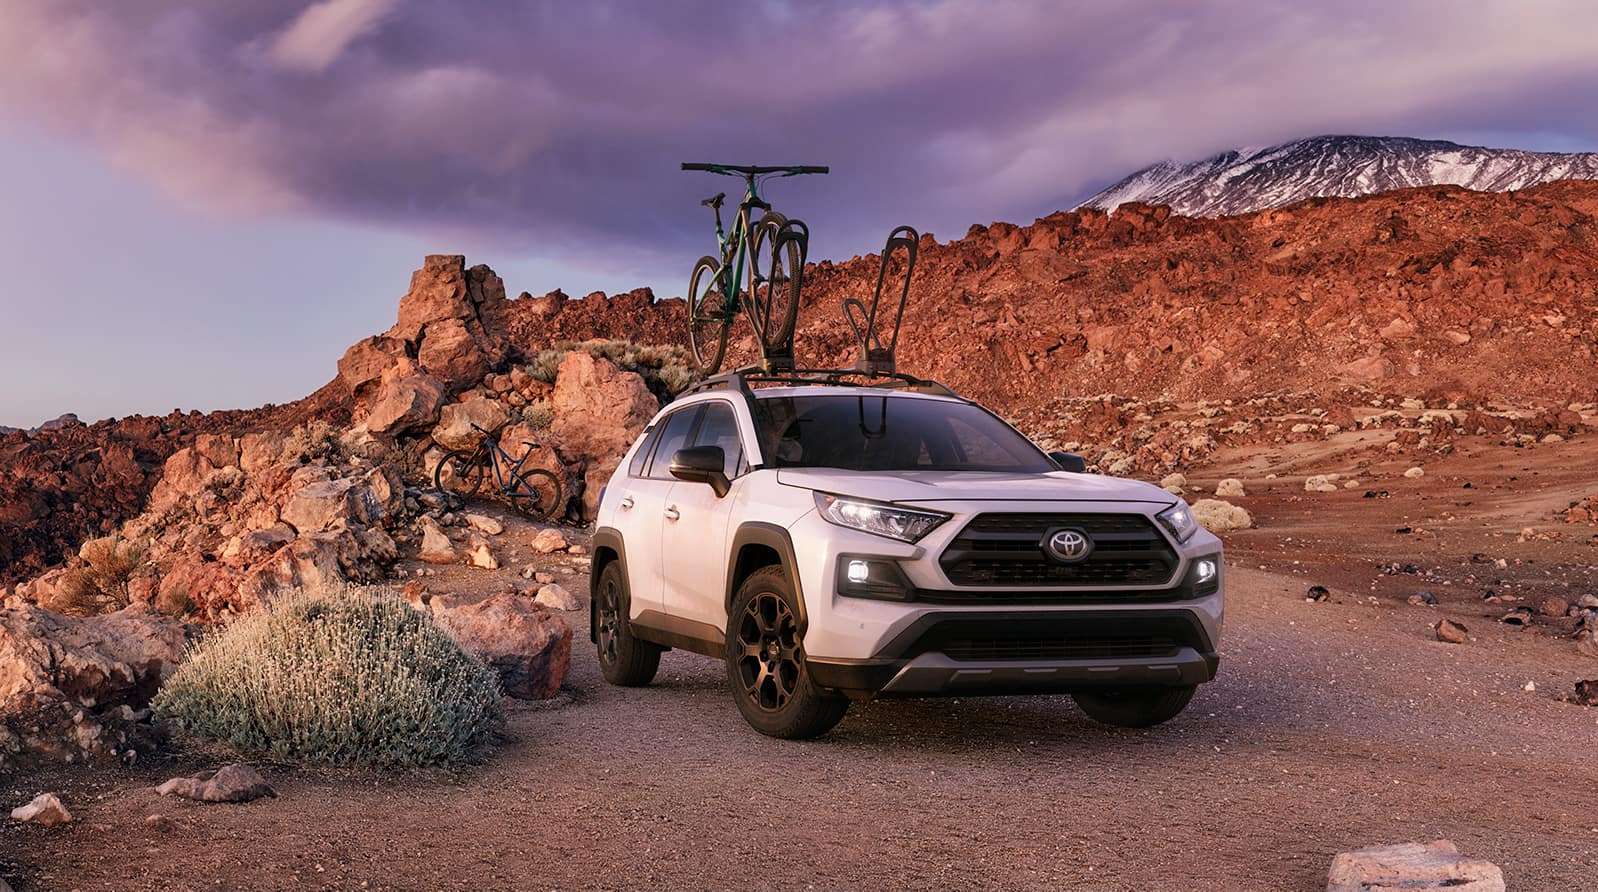 Performance features of the 2020 Toyota RAV4 at Jim Coleman | white 2020 RAV4 parked on mountain terrain